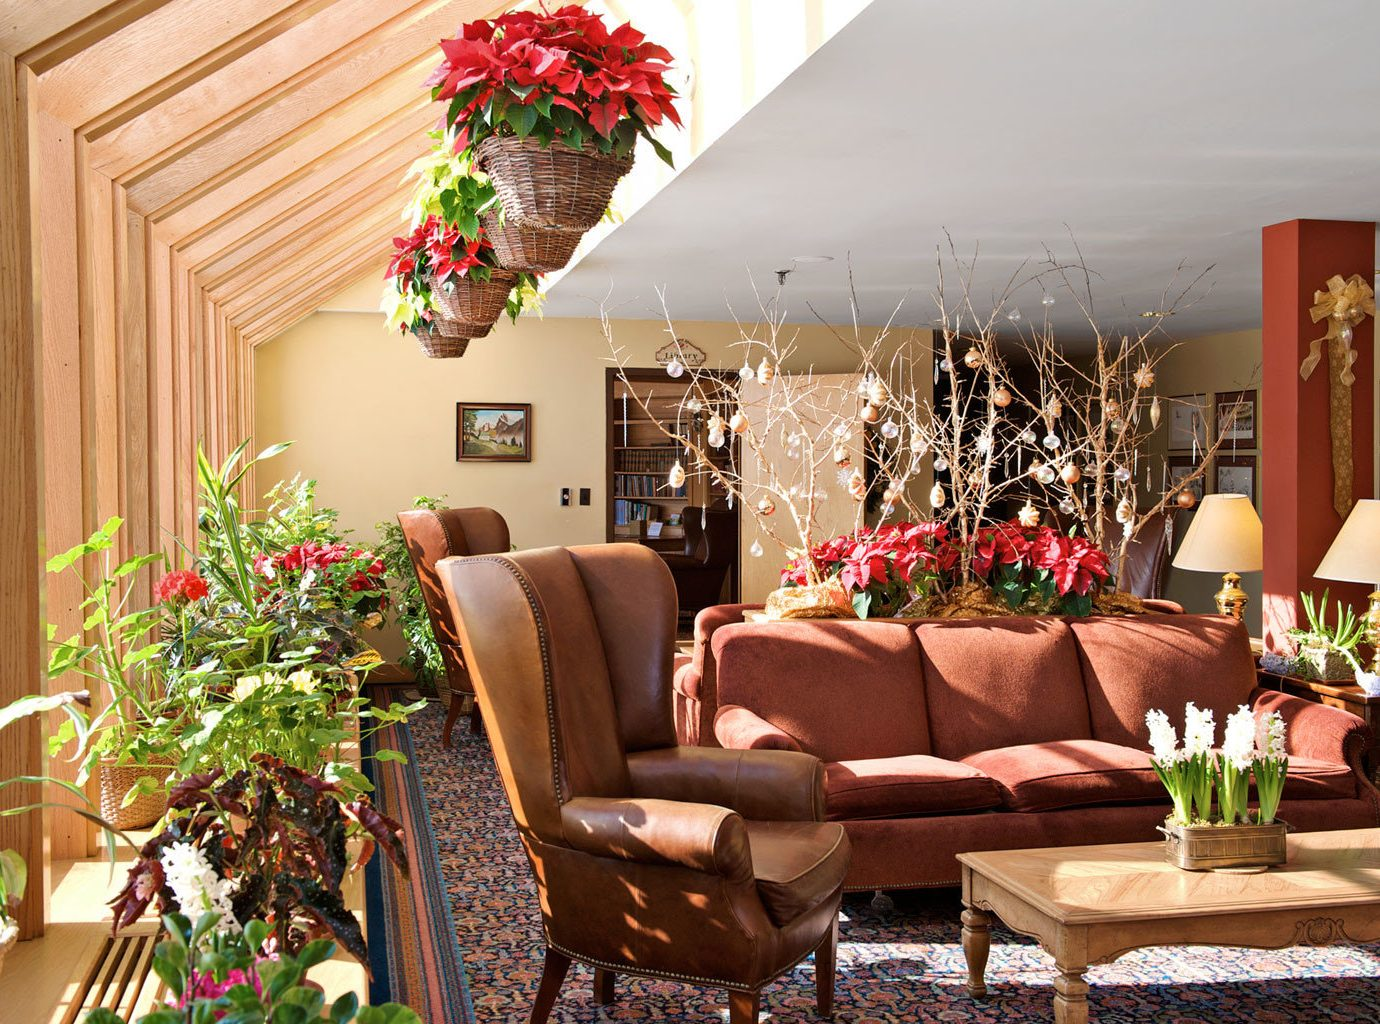 Family Lodge Trip Ideas Weekend Getaways Winter Living indoor wall plant room living room home flower furniture dining room interior design floristry porch estate cottage backyard restaurant decorated area